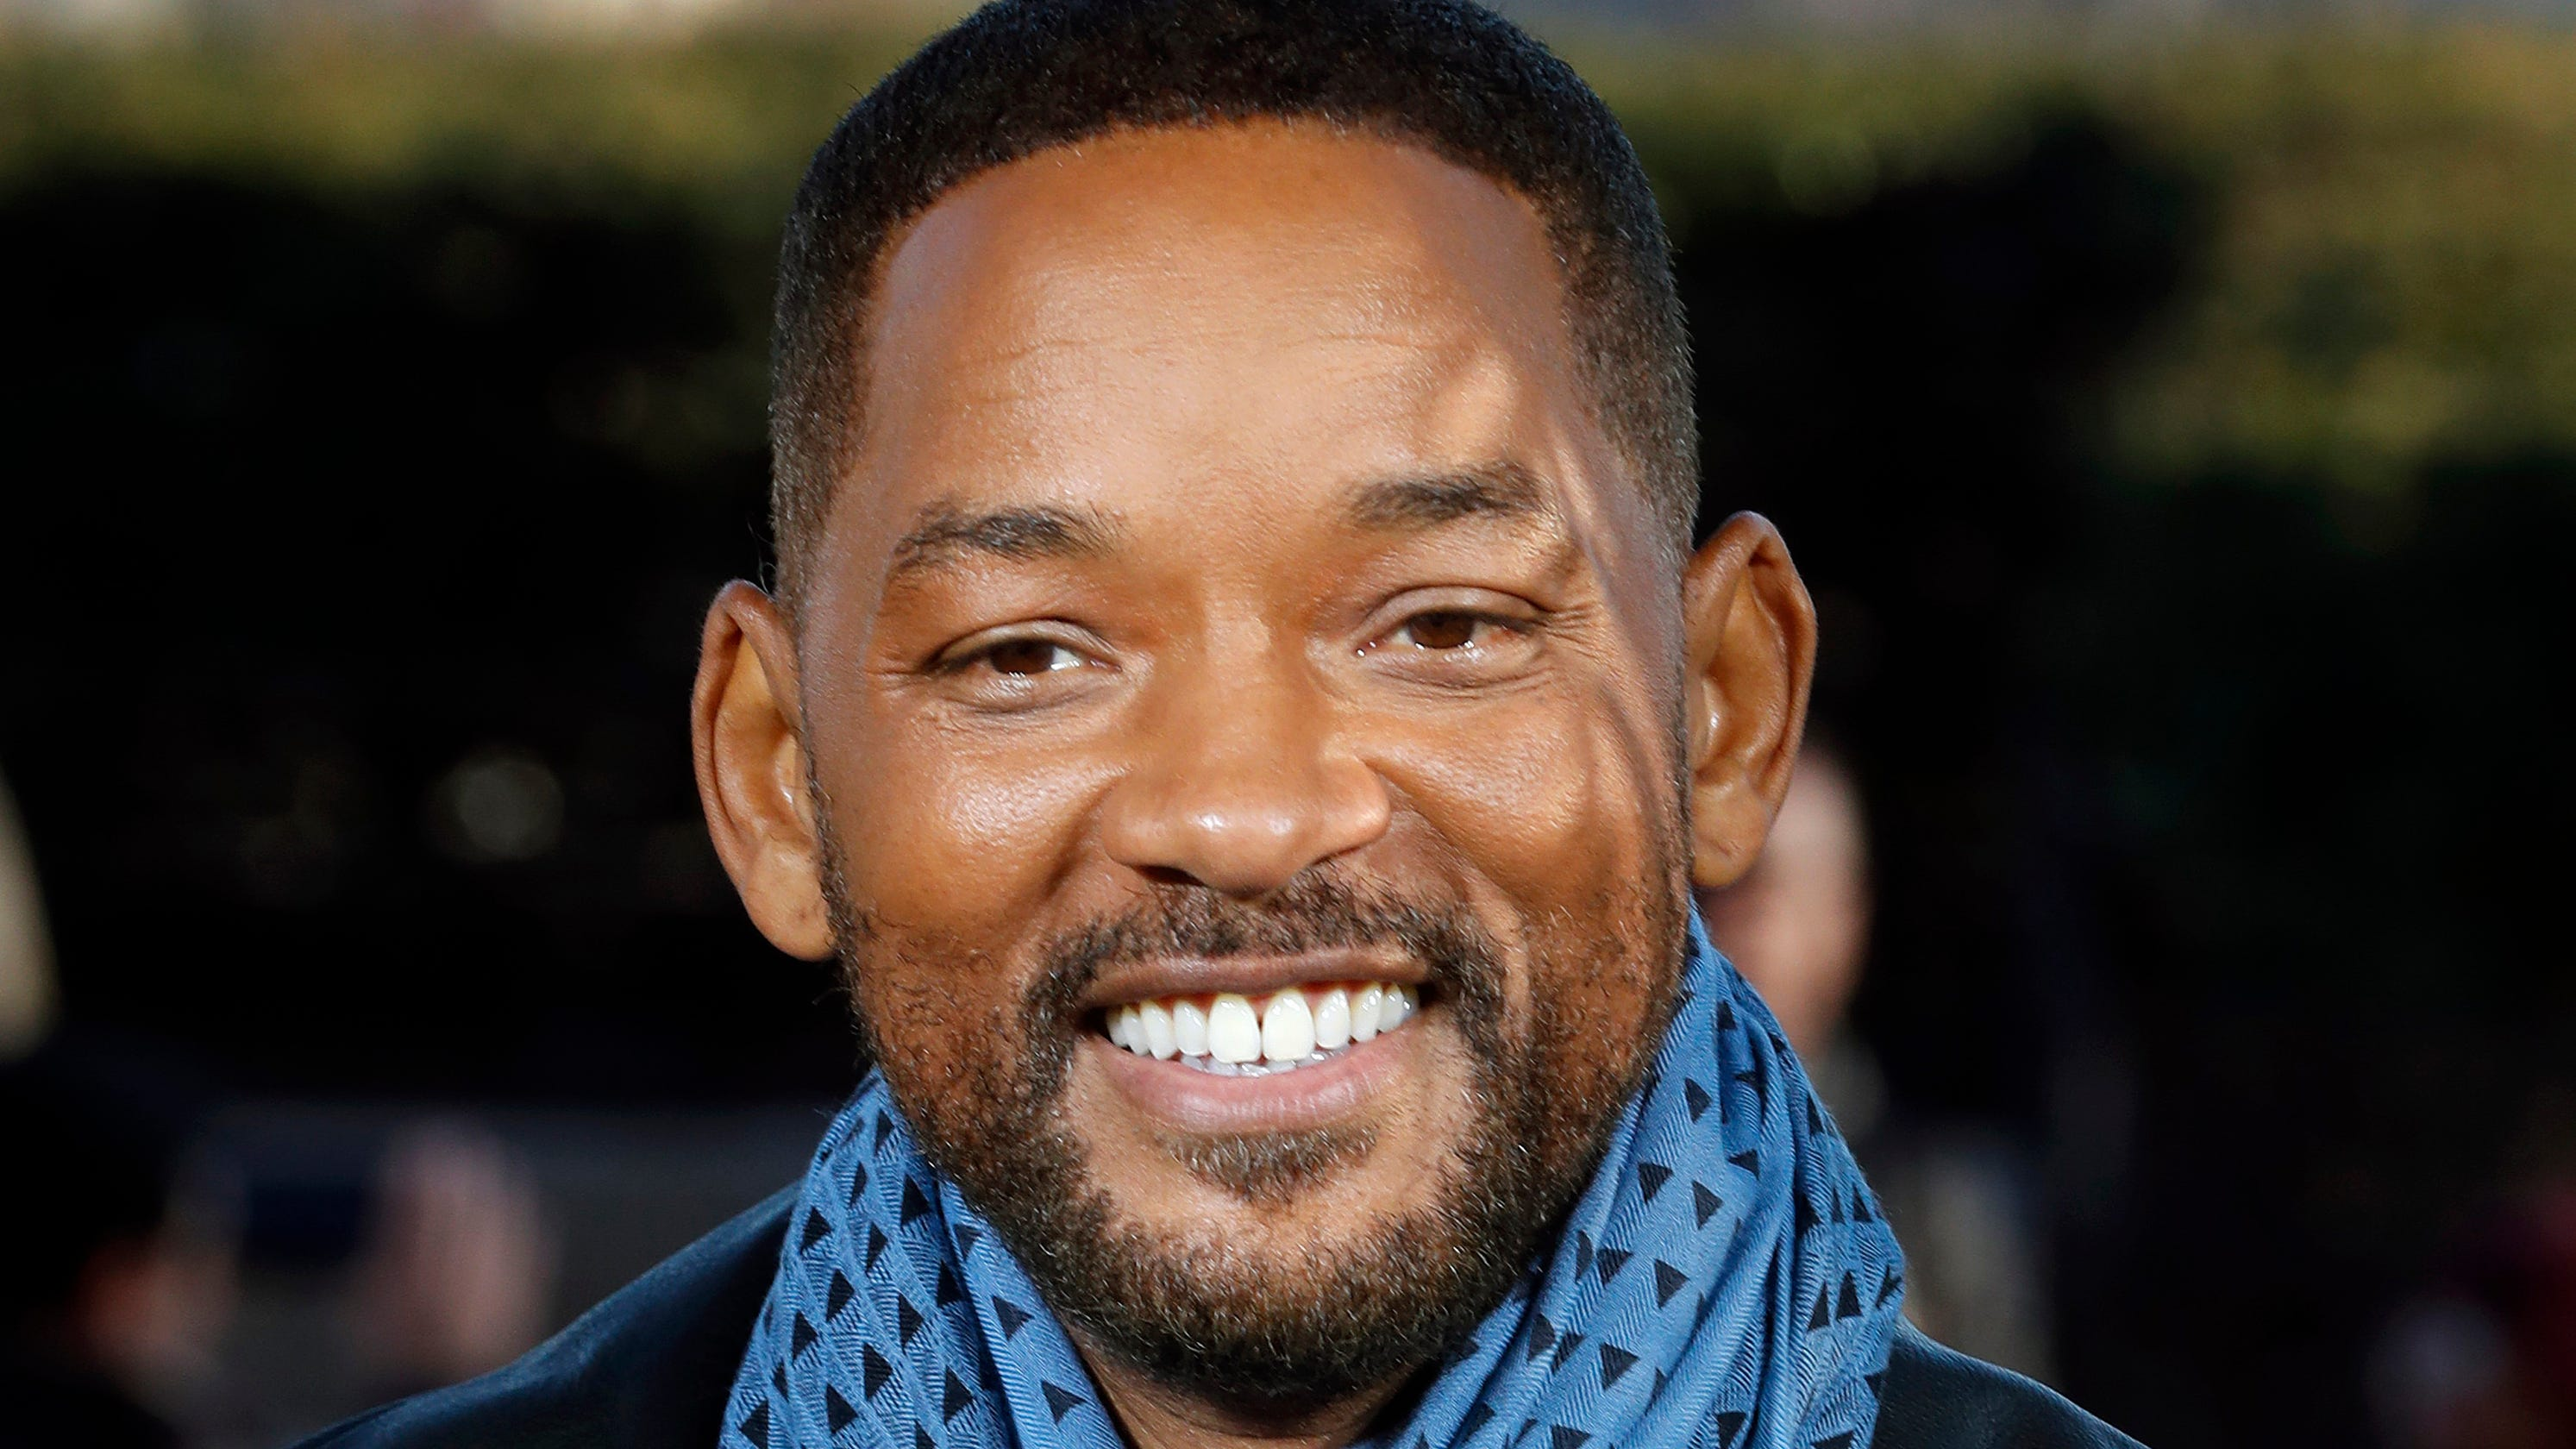 Will Smith celebrates twin siblings' 50th birthday: See the rare family photo